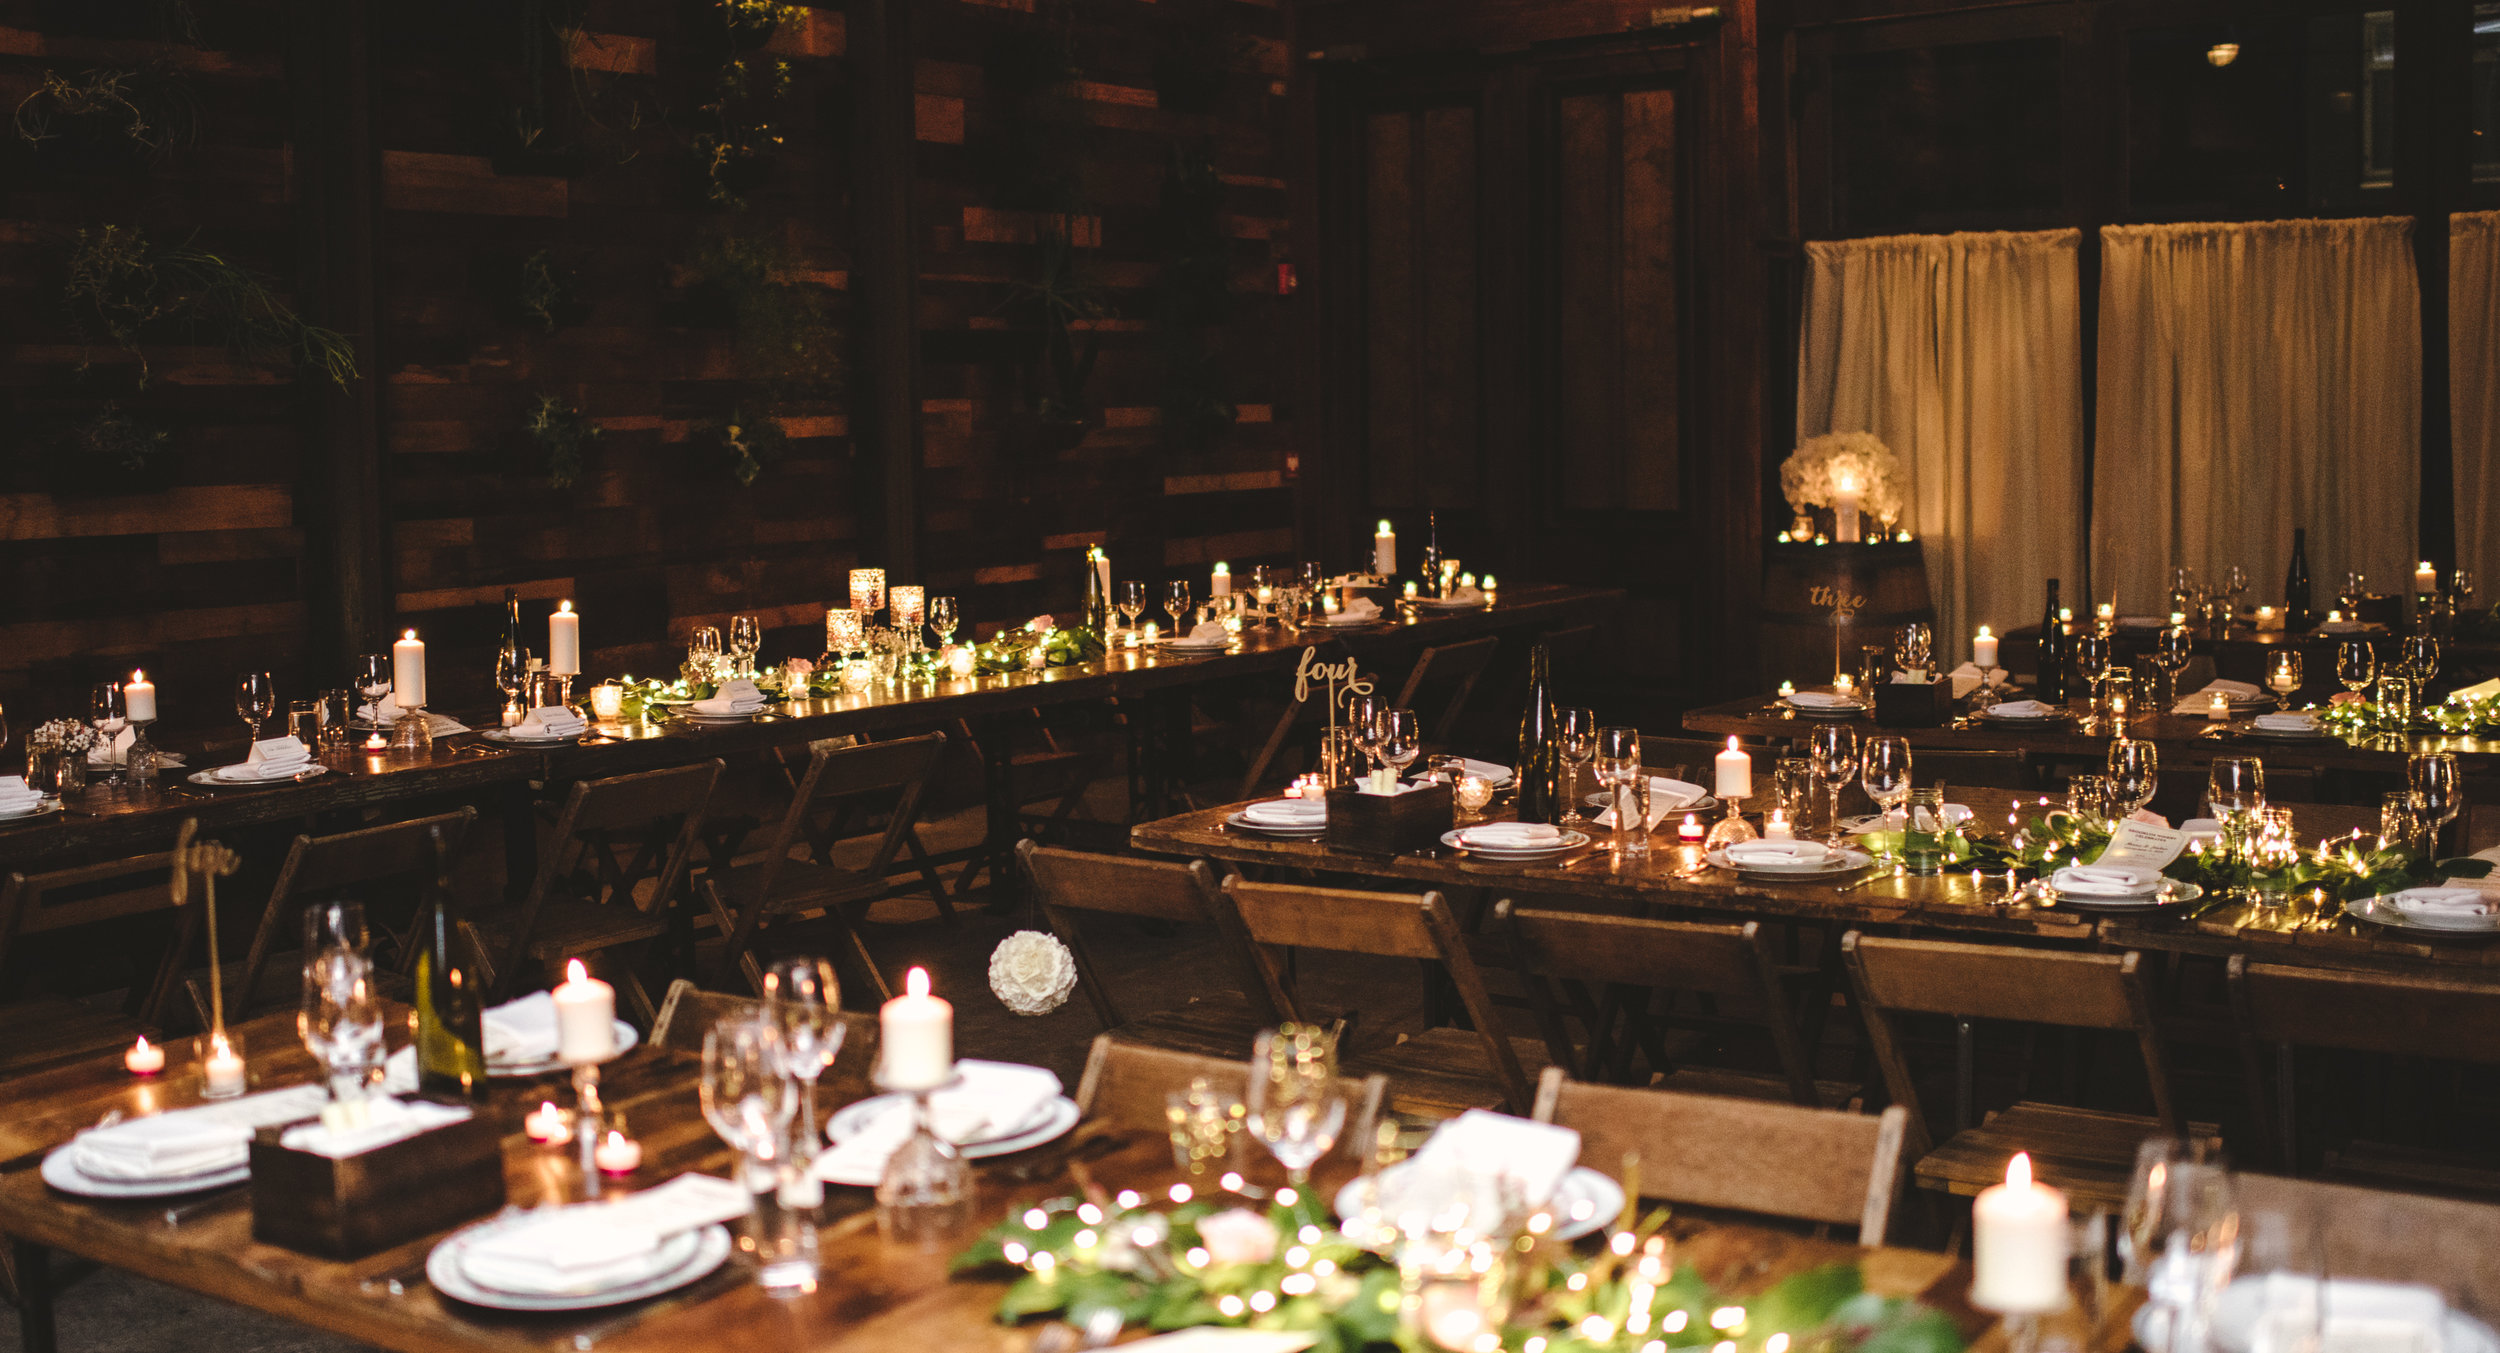 BROOKLYN WINERY WEDDING - TWOTWENTY by CHI-CHI AGBIM-335.jpg